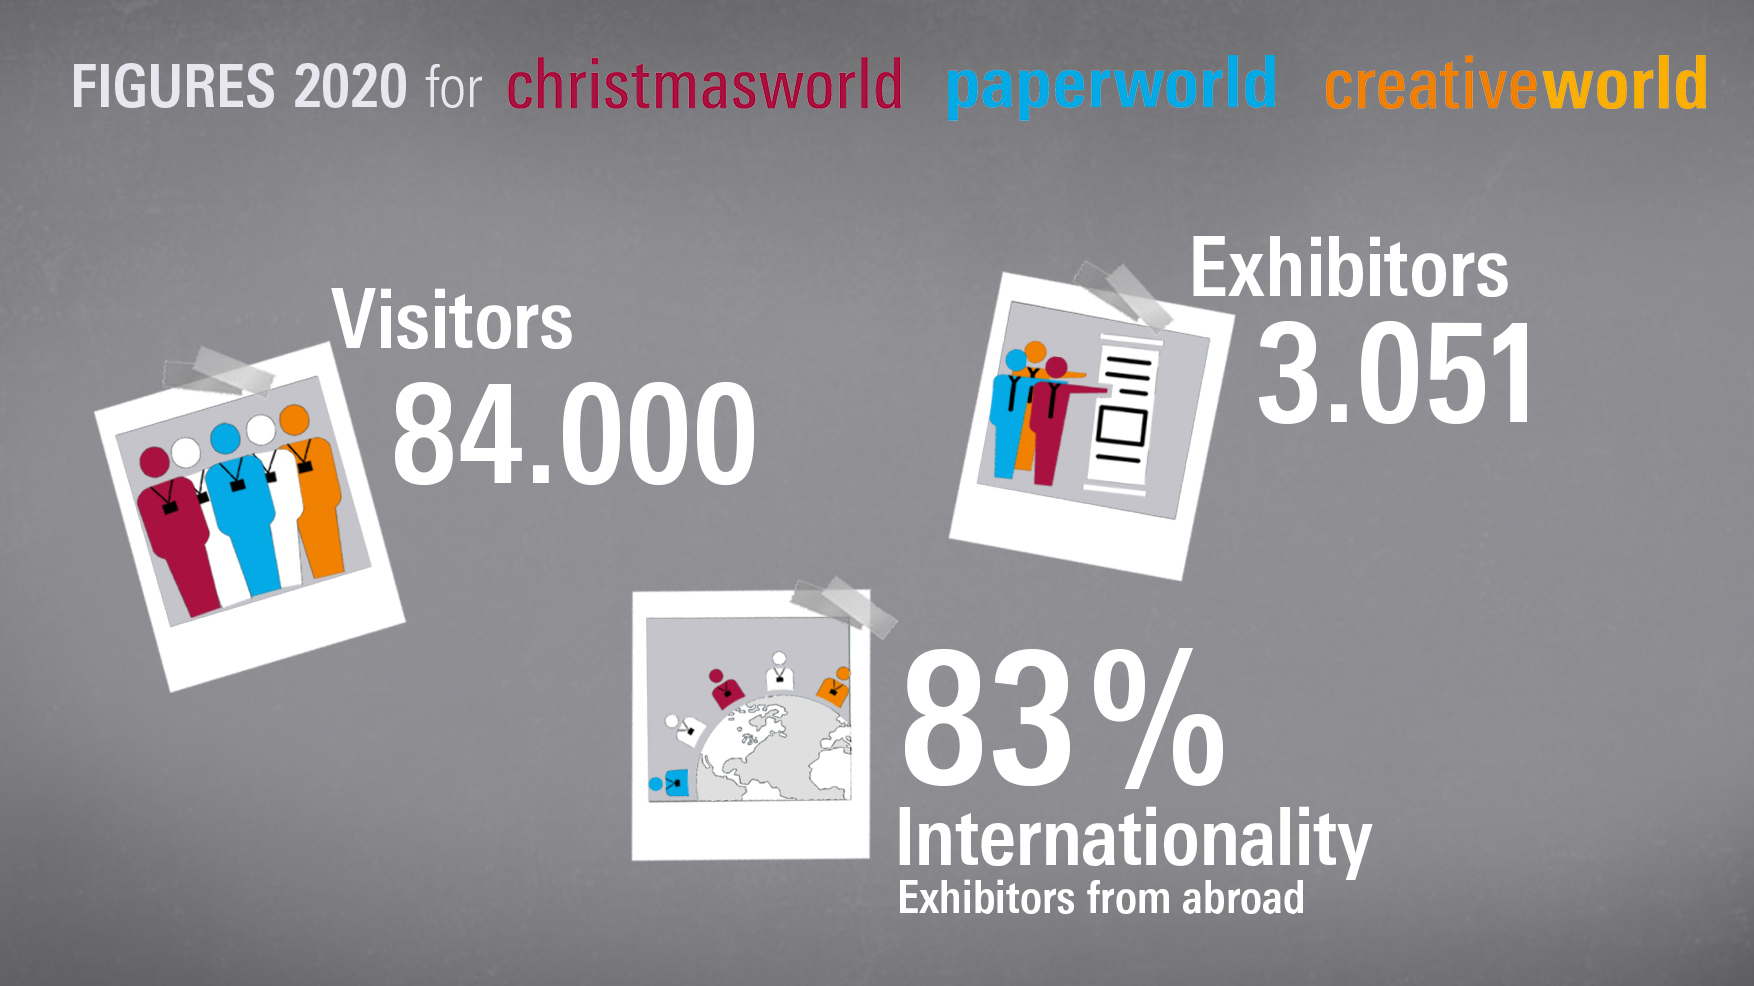 2020 figures for Christmasworld, Creativeworld and Paperworld